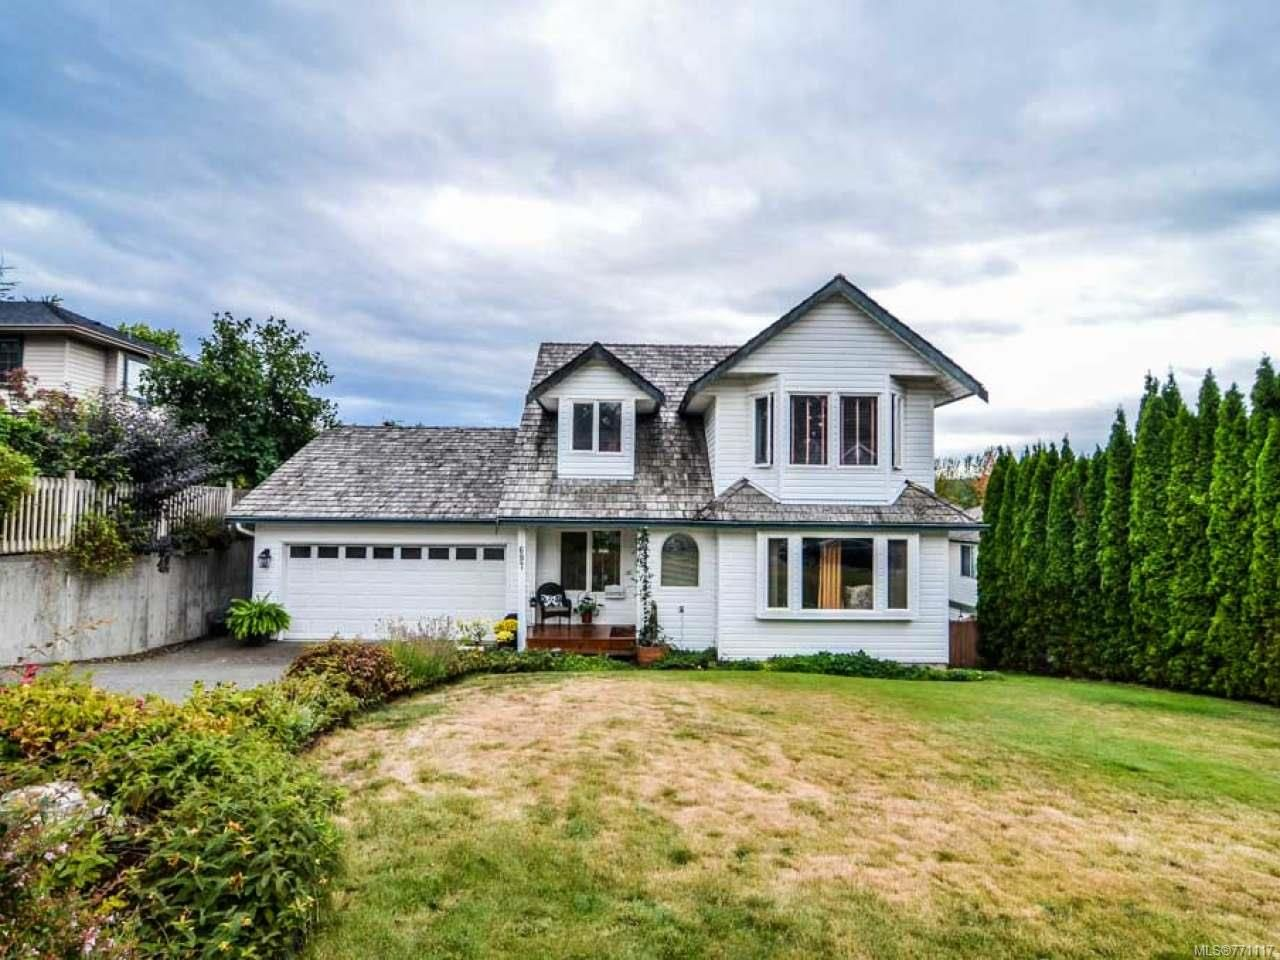 Photo 34: Photos: 697 Steenbuck Dr in CAMPBELL RIVER: CR Campbell River Central House for sale (Campbell River)  : MLS®# 771117